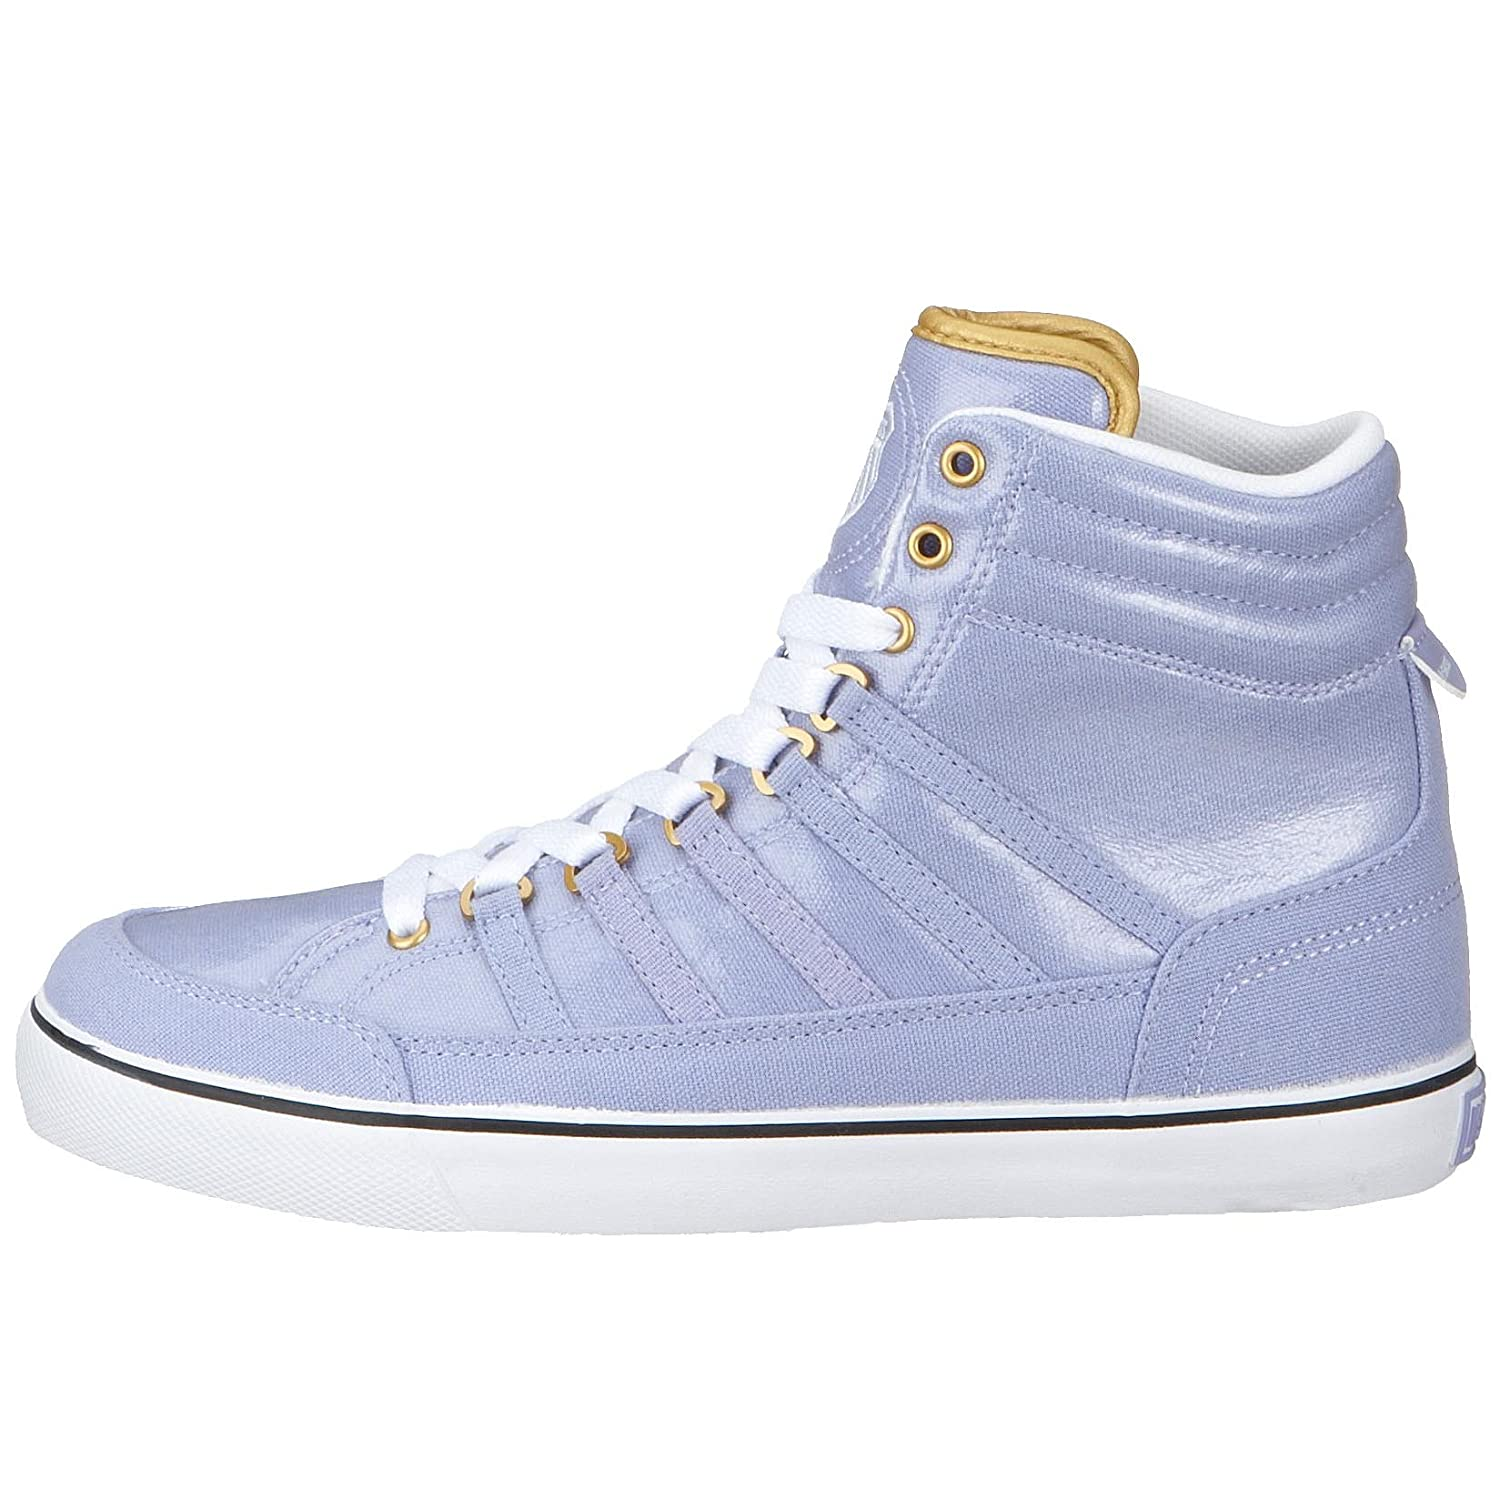 K-Swiss SURF & HIM SAND HIM & 92436-309-M Damen Turnschuhe b0b0c0